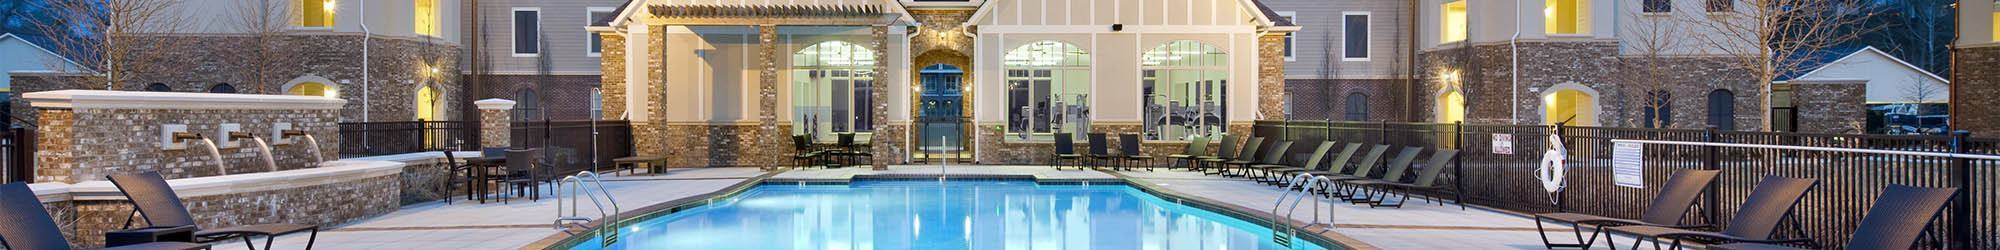 Apartments in Mountain Brook, AL offering 1, 2 & 3 bedroom apartments